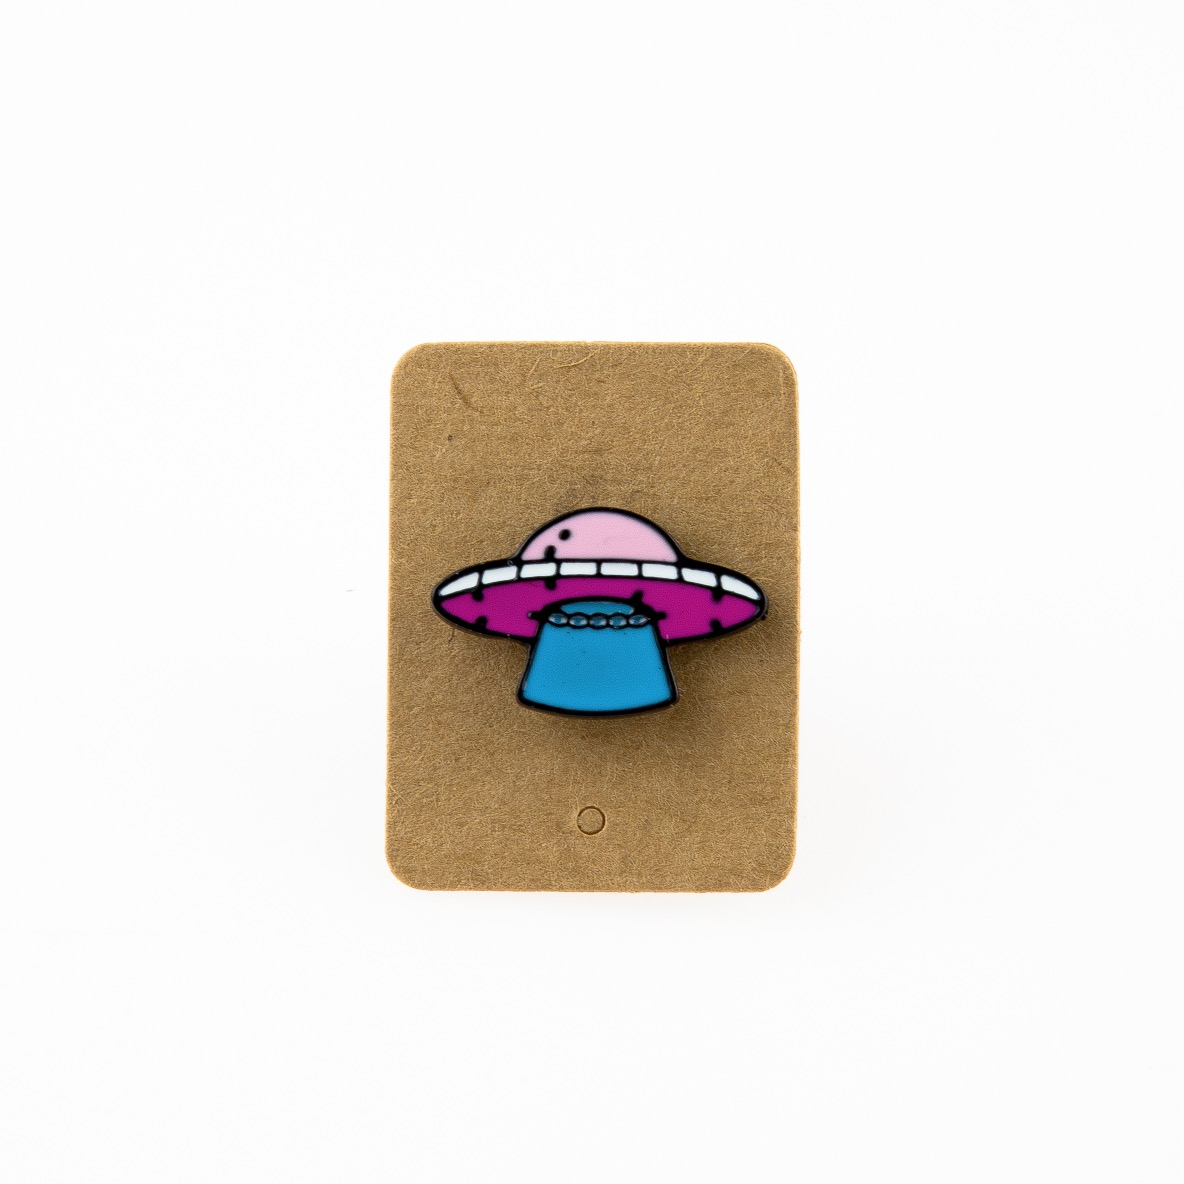 Metal Ufo Light Attack Enamel Pin Badge